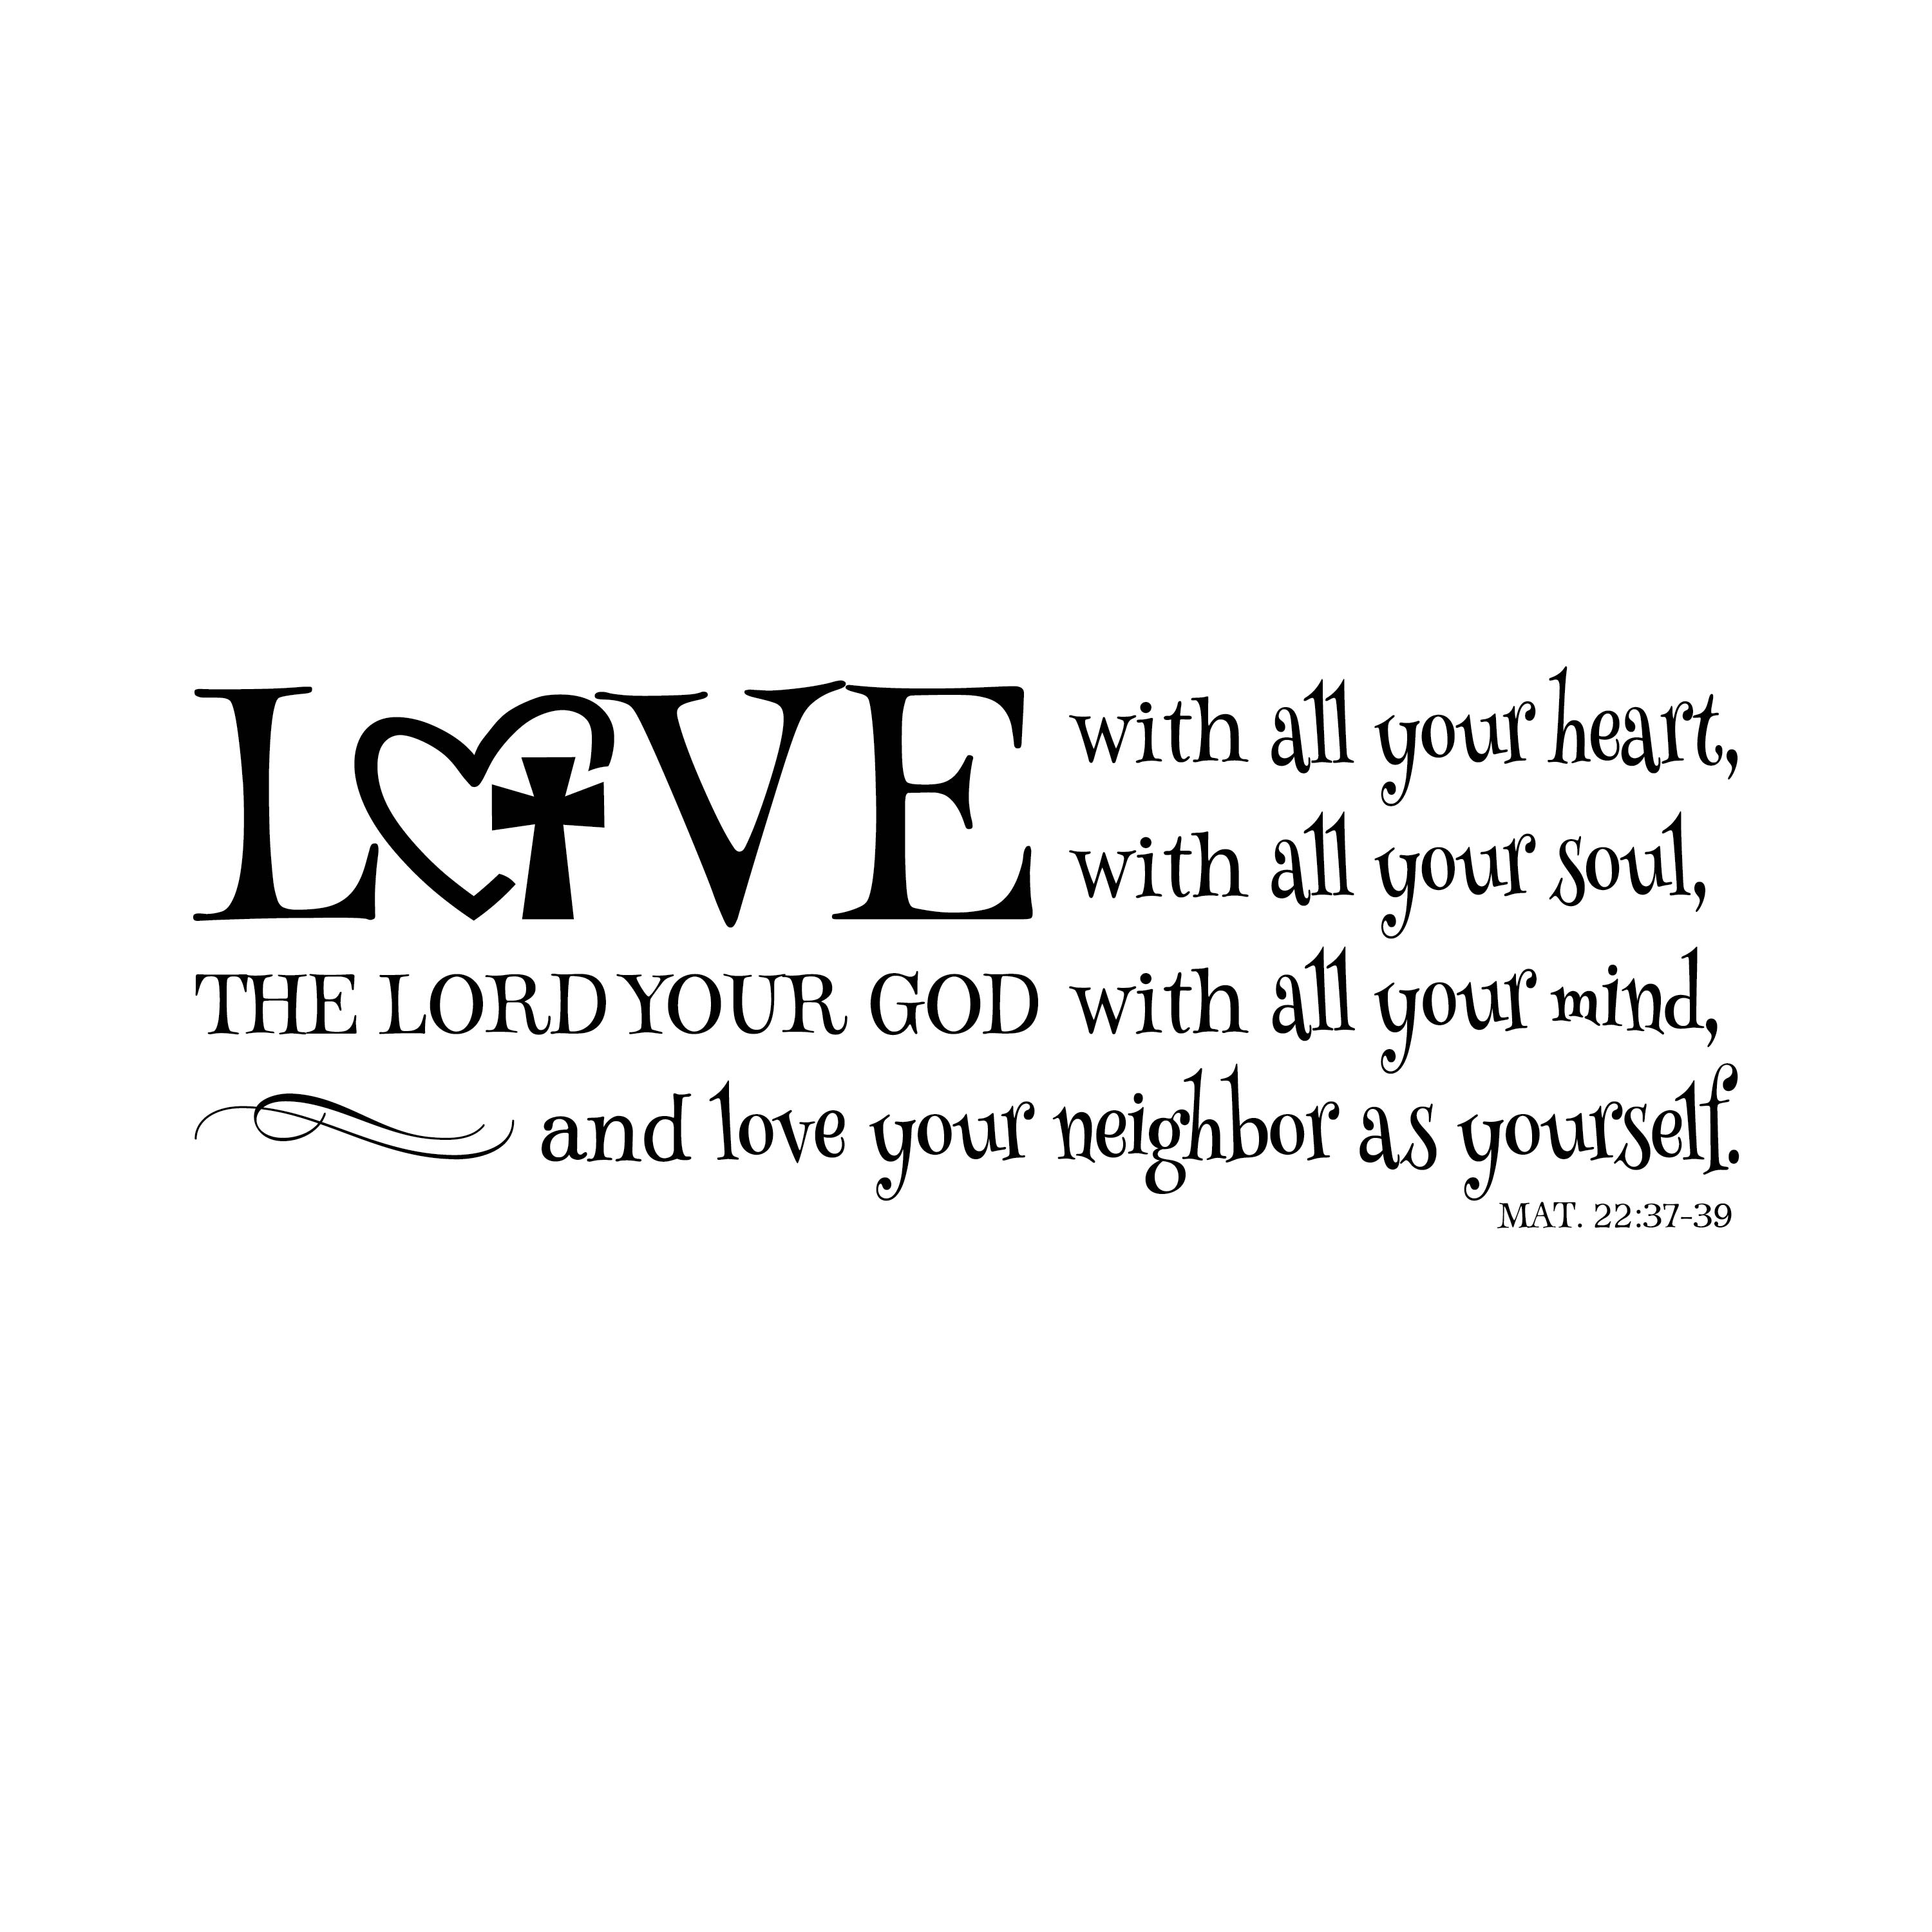 The Lord S Love Wall Decal: Matthew 22V37 Vinyl Wall Decal 3 Love The Lord Your God